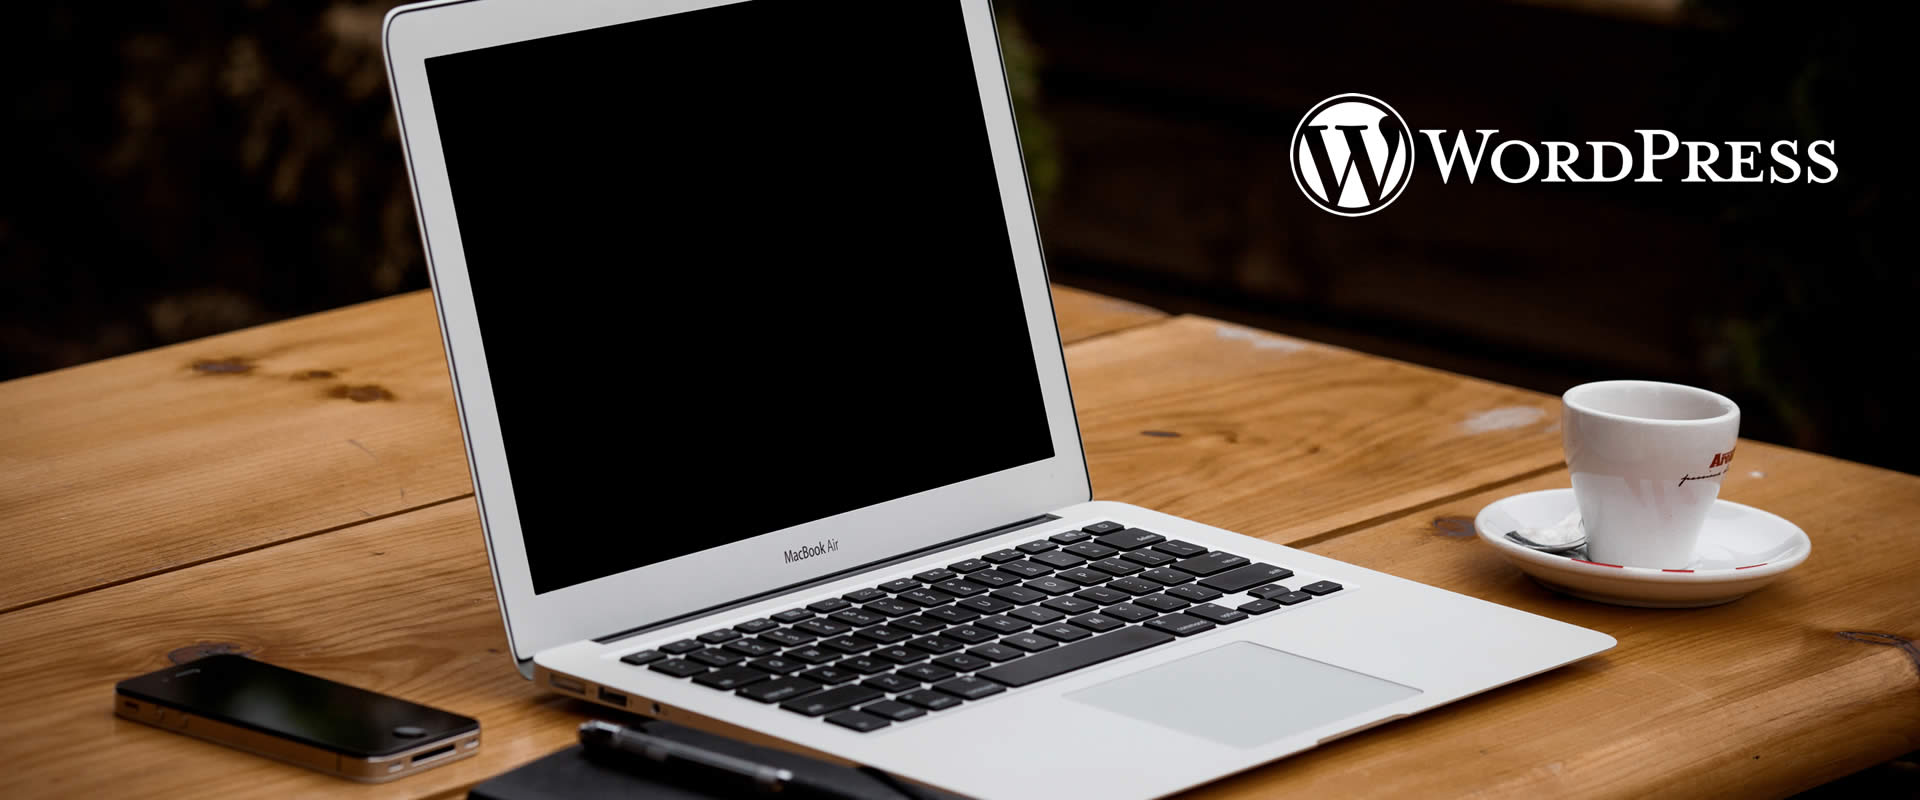 Curso WordPress Uberlândia